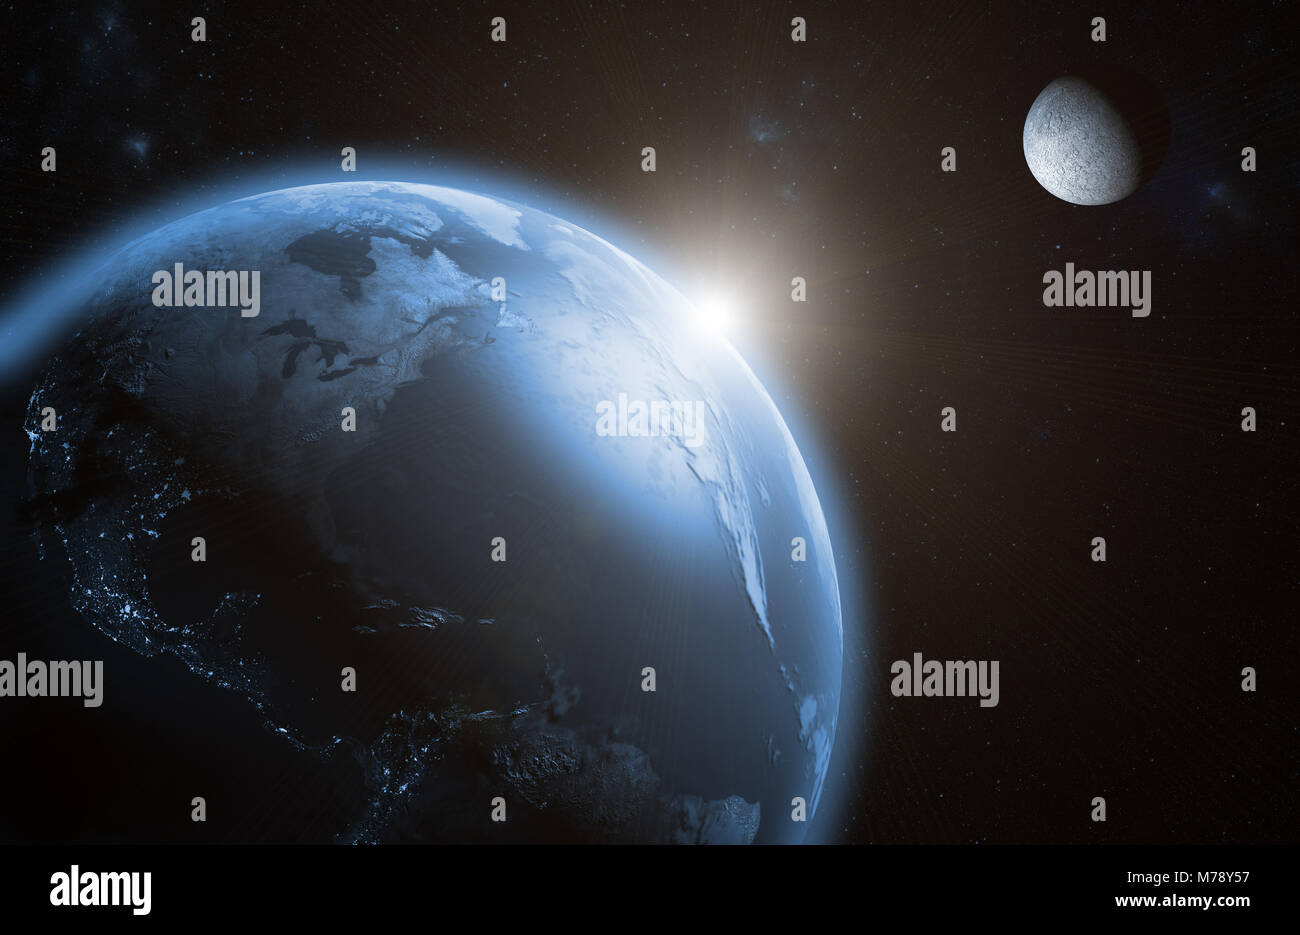 Sunrise on Earth with the moon - Stock Image